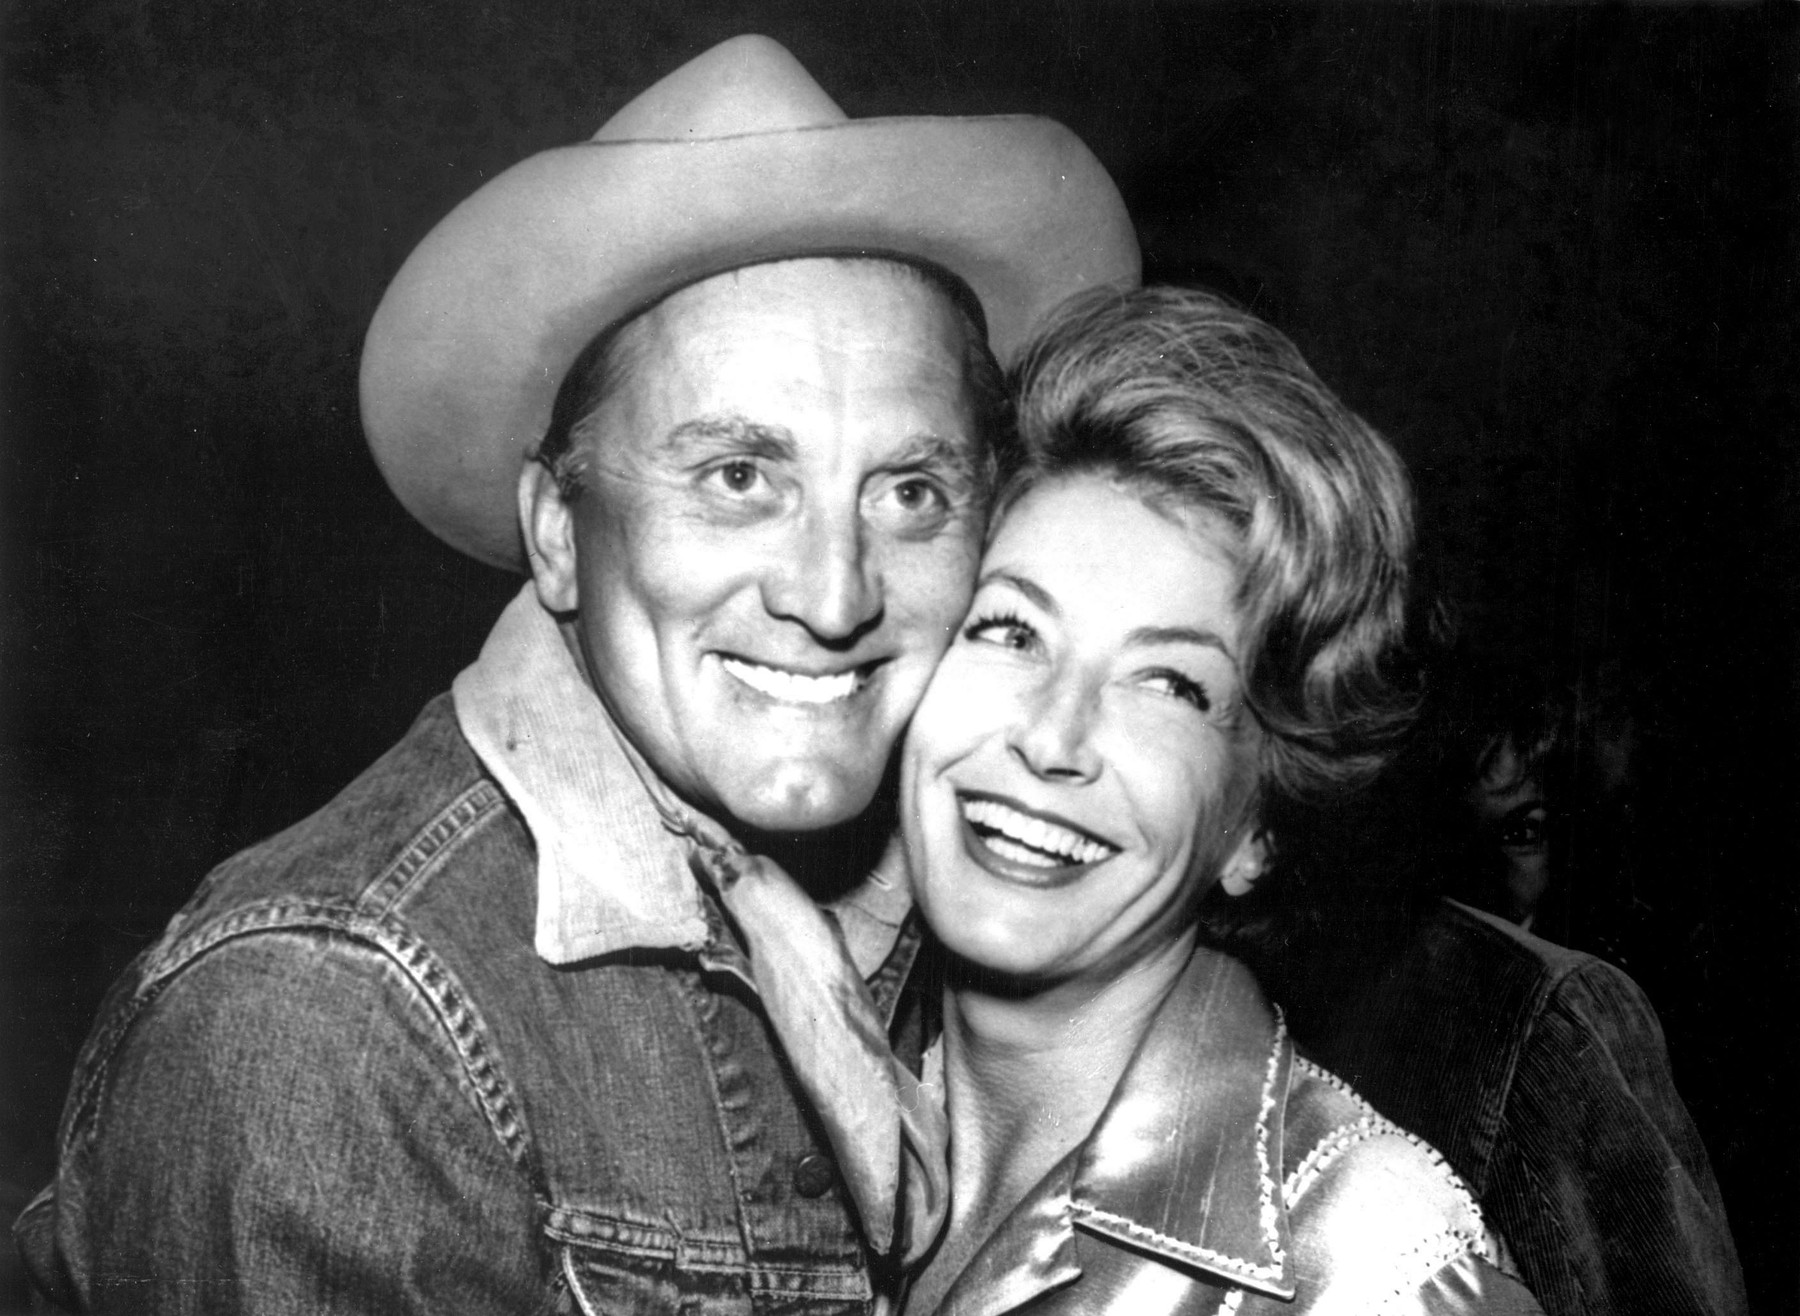 Jan 01, 1965 - Los Angeles, CA, USA - Once quoted as saying 'I've made a career of playing sons of bitches,' KIRK DOUGLAS (pictured here with his wife ANNE BUYDENS) is considered by many to be the epitome of the Hollywood hard man. In addition to acting in countless films over the course of his long career, Douglas has served as a director and producer, and will forever be associated with his role in helping to put an end to the infamous Hollywood black list., Image: 210154226, License: Rights-managed, Restrictions: NOT FOR FRANCE!!!, Model Release: no, Credit line: KEYSTONE Pictures USA / Zuma Press / Profimedia